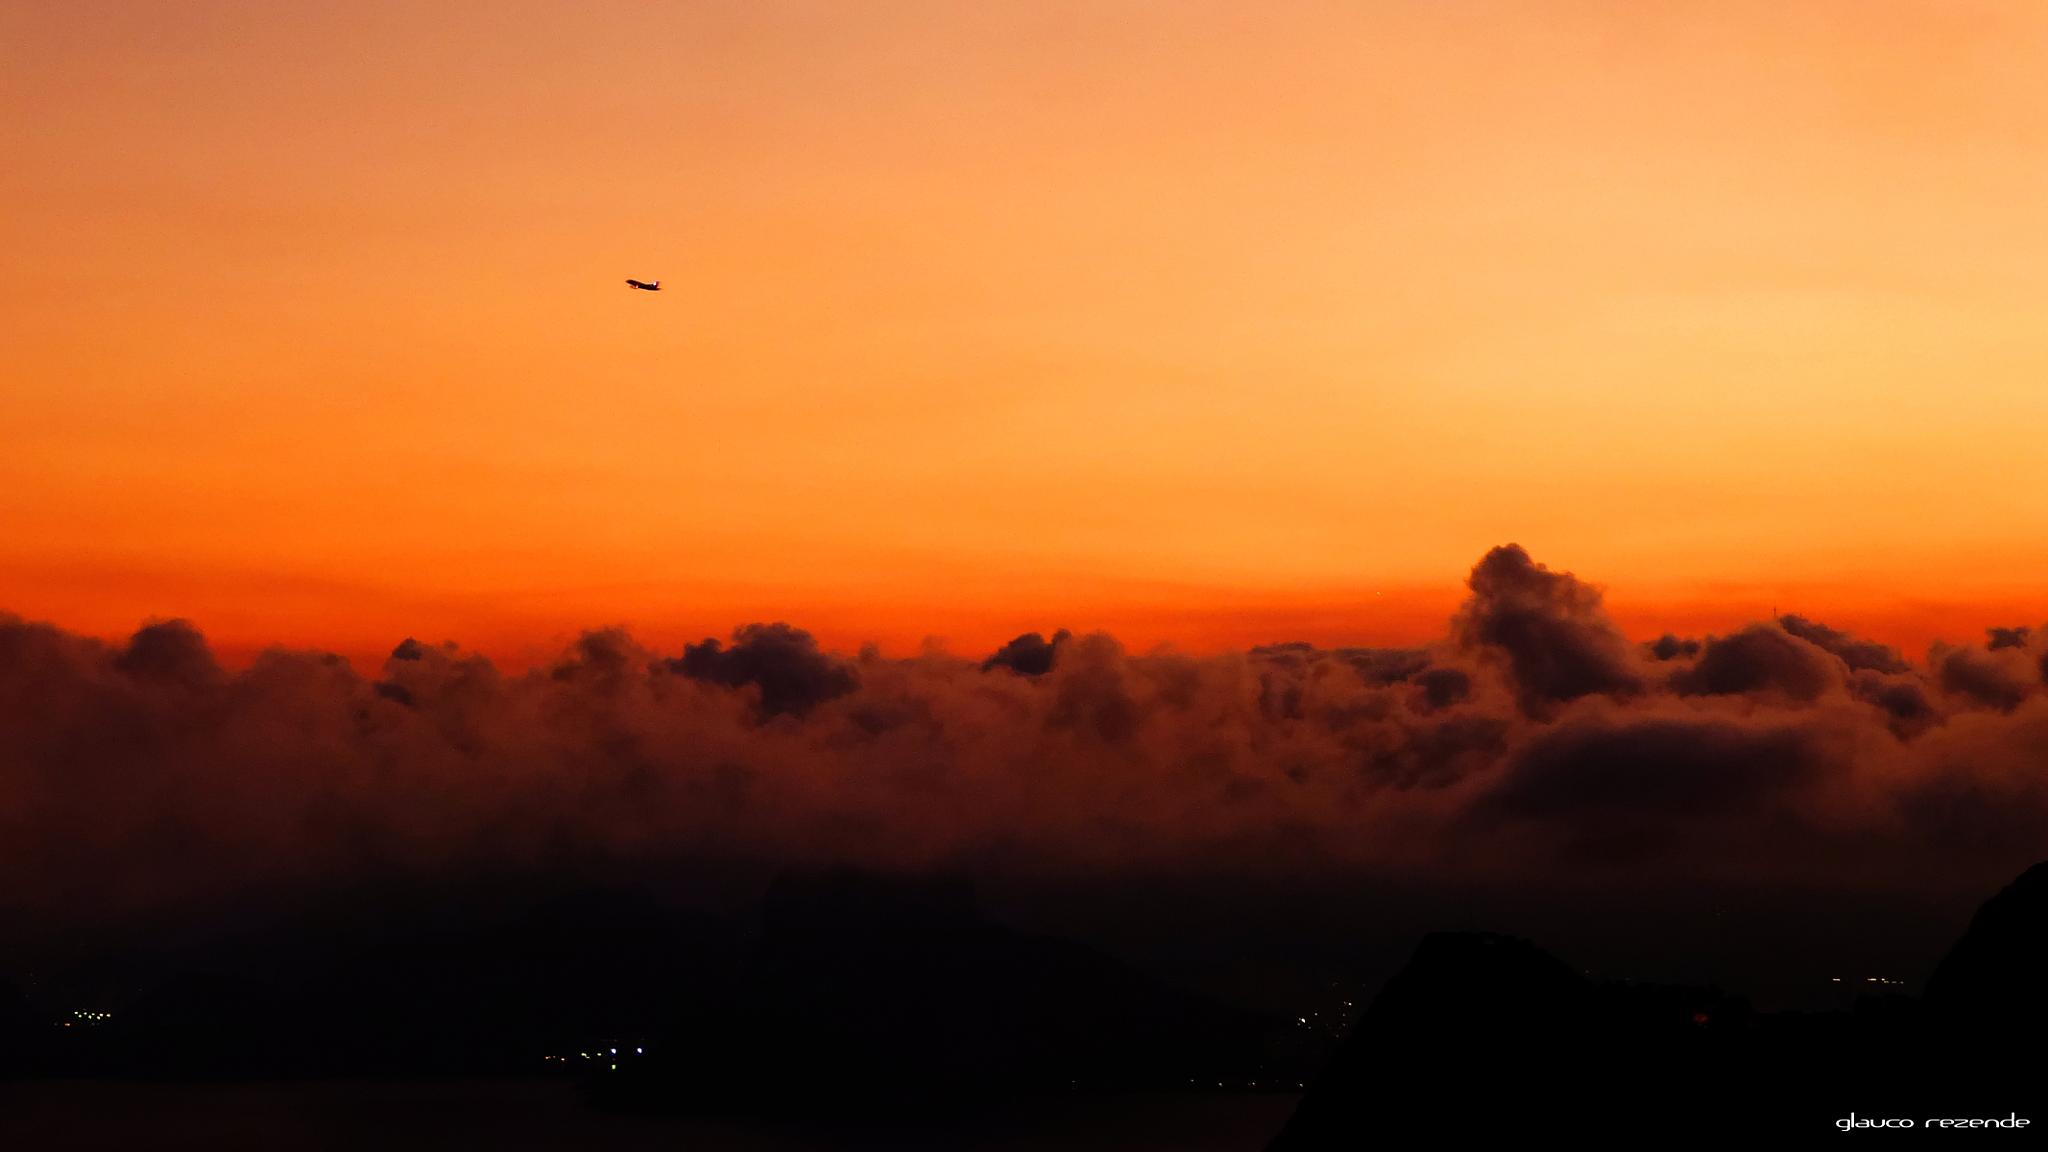 Over the clouds by Glauco Rezende